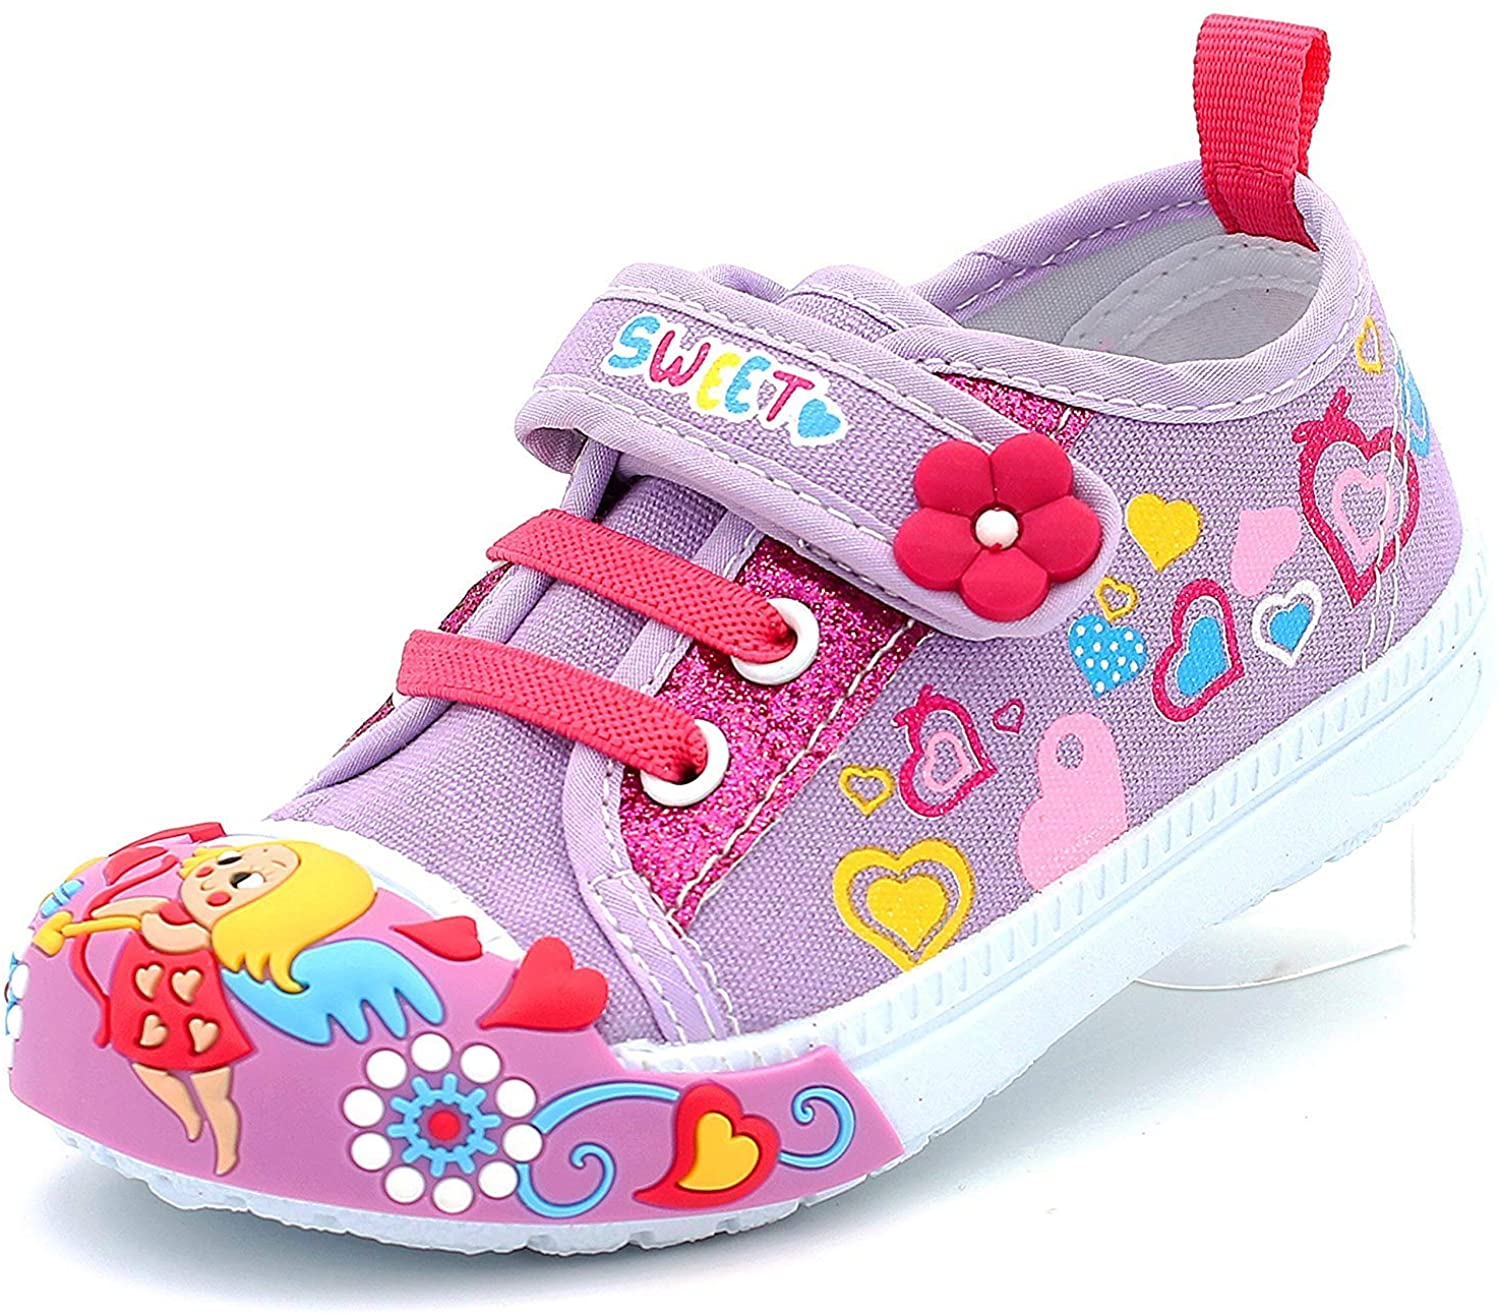 Canvas Sneakers Shoes for Toddler Girls Infant Baby Strap Soft Comfortable Ea.